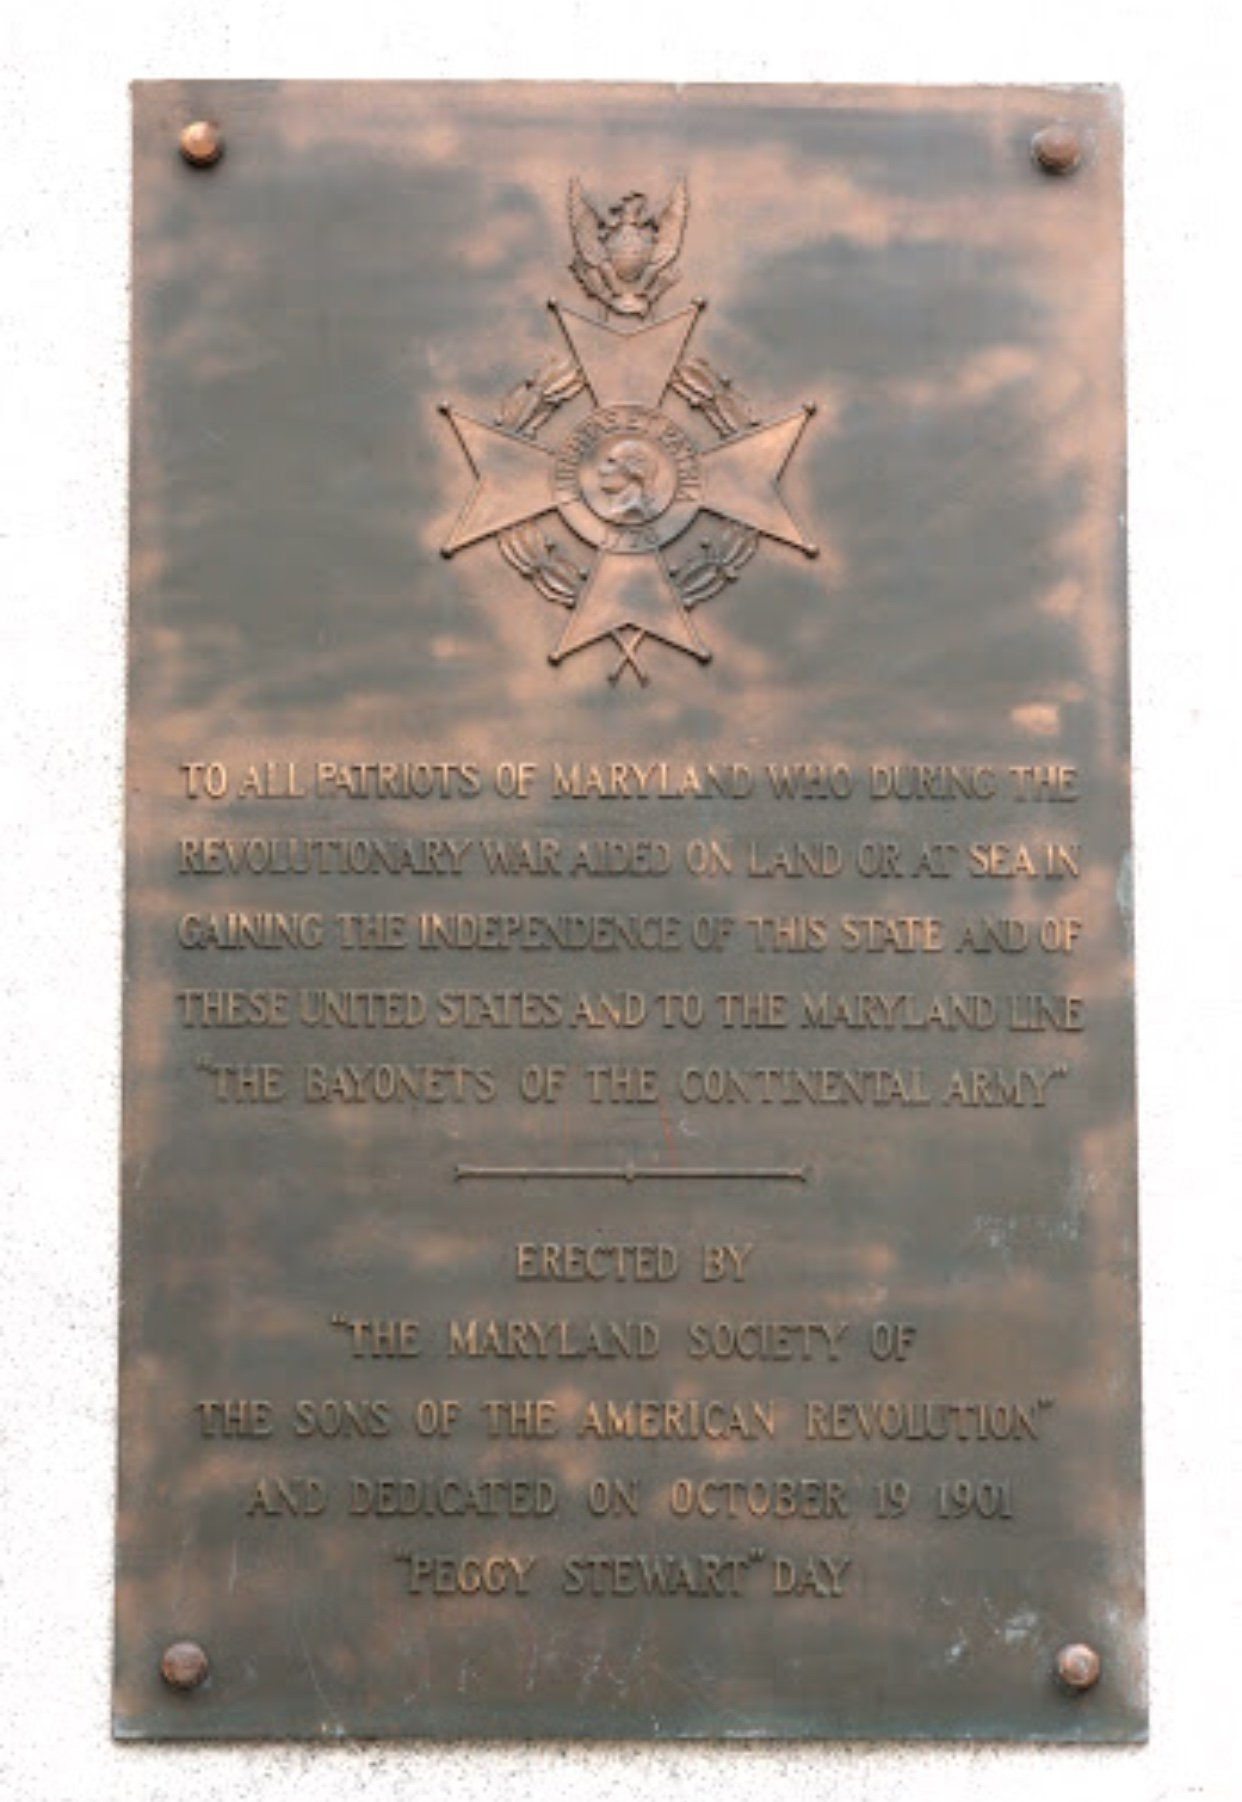 This is the plaque on the monument.